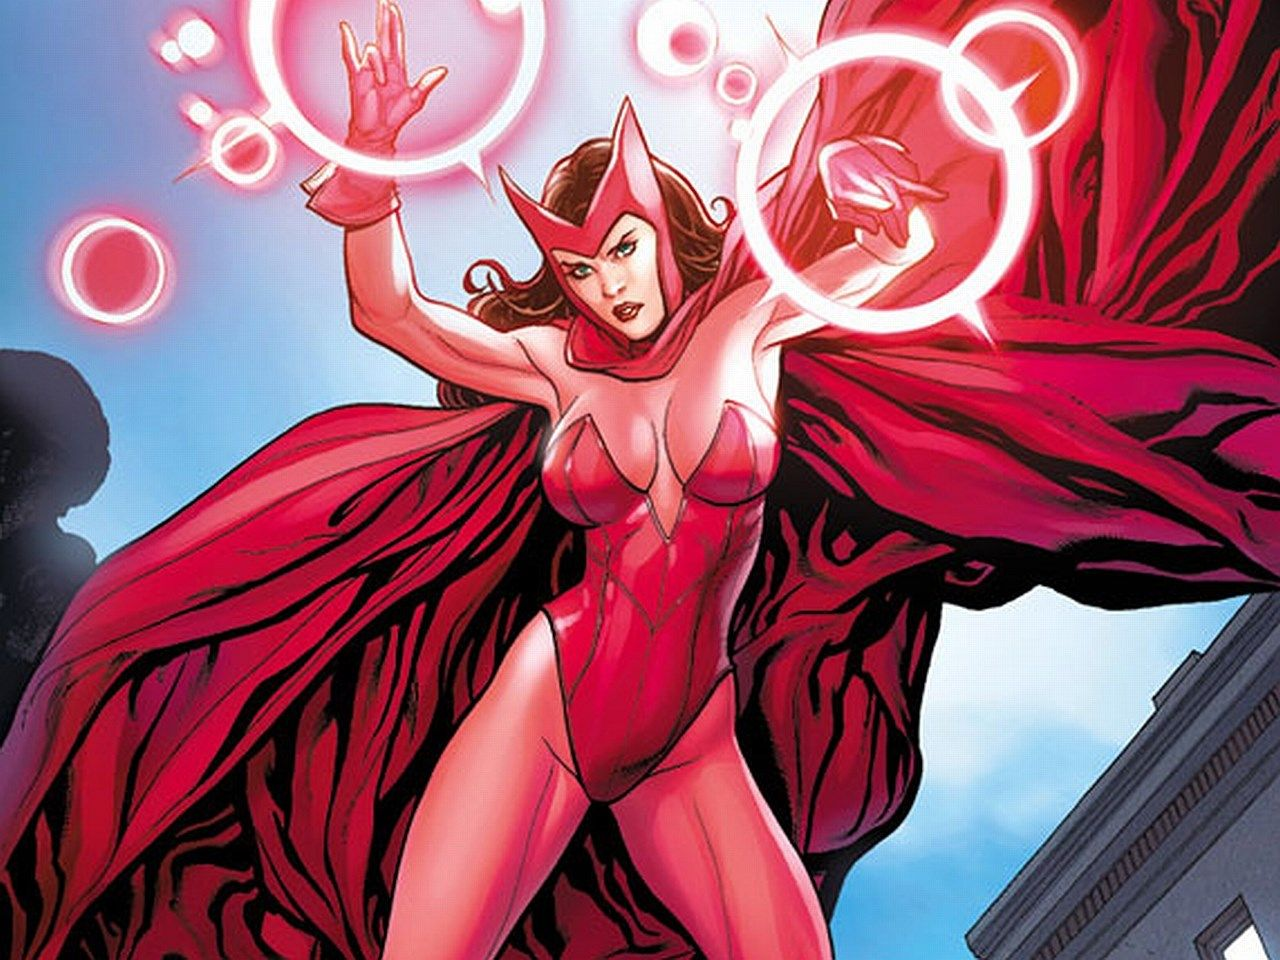 Must see Wallpaper Marvel Scarlet Witch - 5b0fc3143273743efdfa29eed0ab9a80  You Should Have_195320.jpg